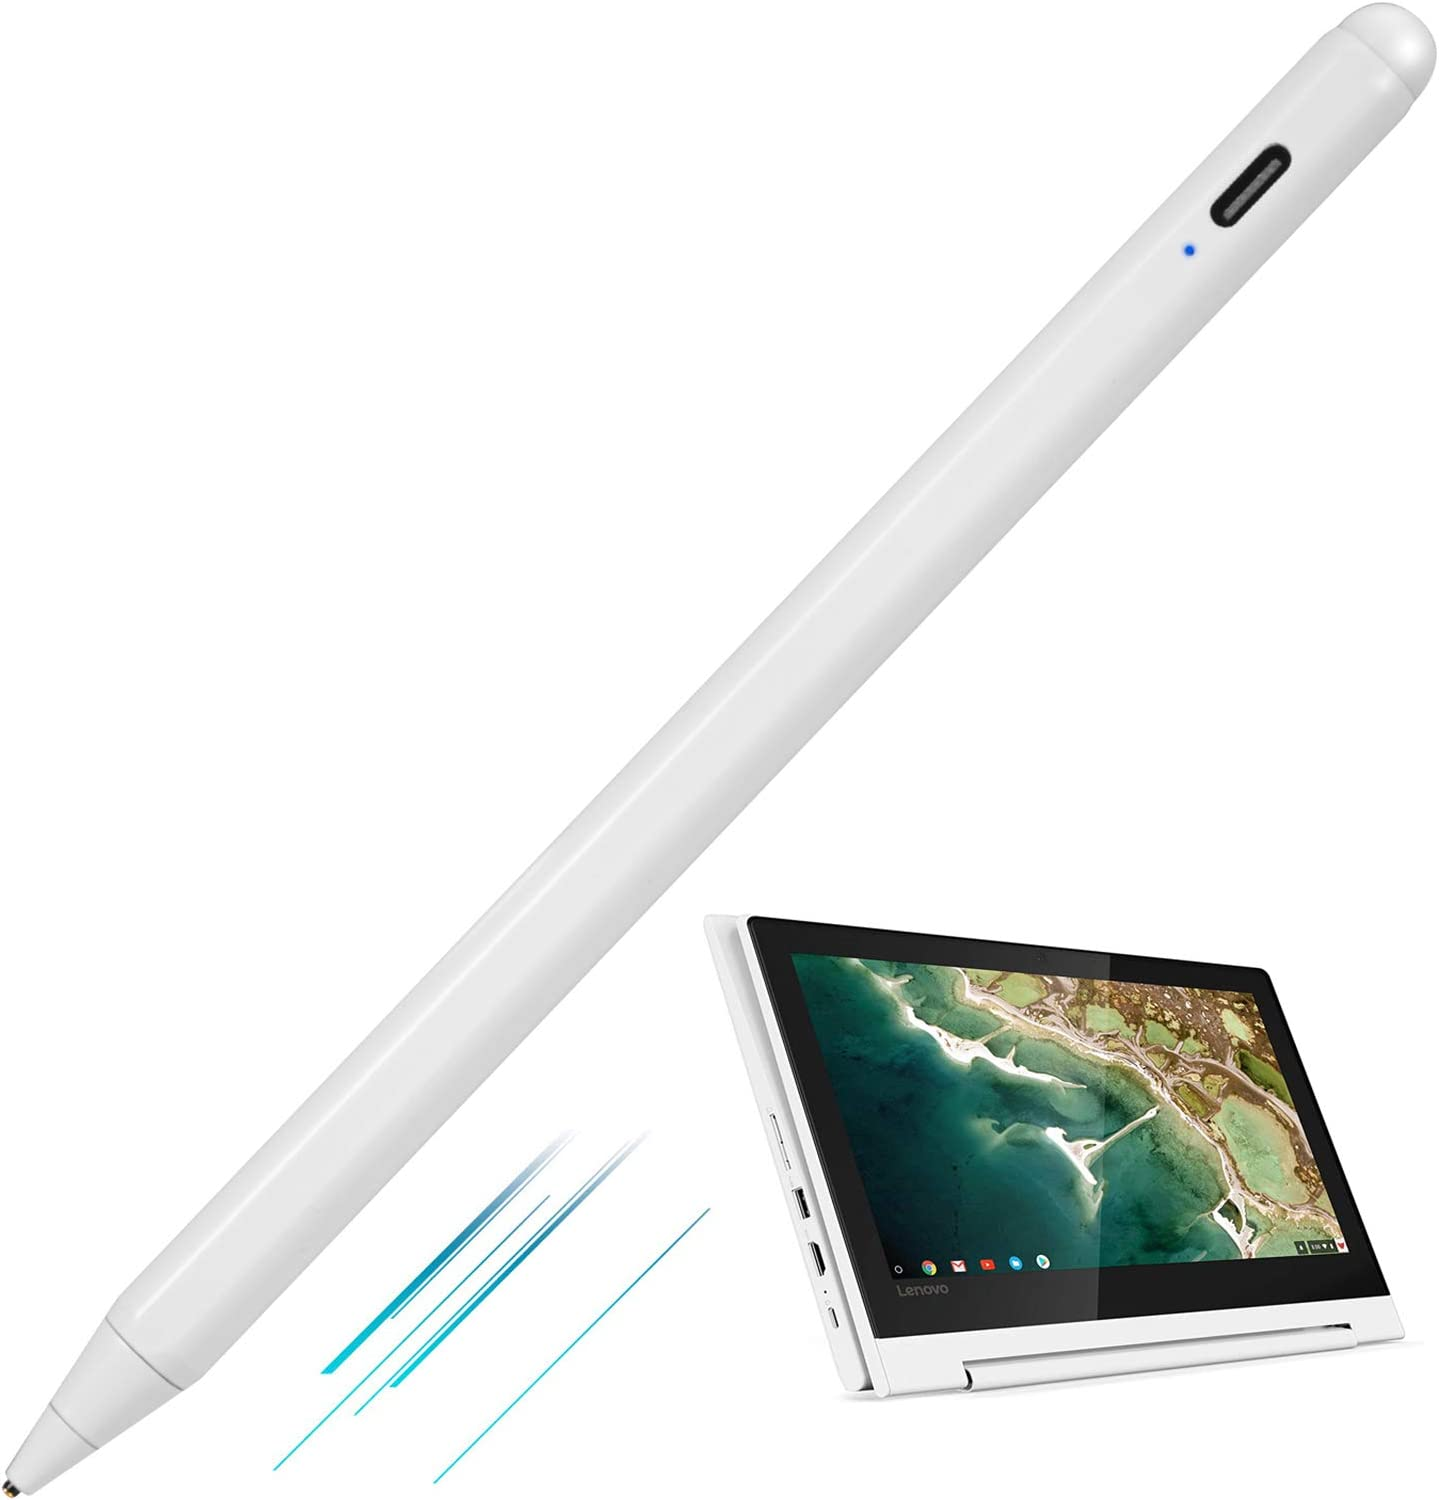 Active Stylus Pen for Lenovo C330 Convertible 2-in-1 Chromebook 11.6,Type-C Charge High Precision with Fine Tip Universal Stylus Pens Compatible with Lenovo C330 Chromebook,Good for Drawing,White